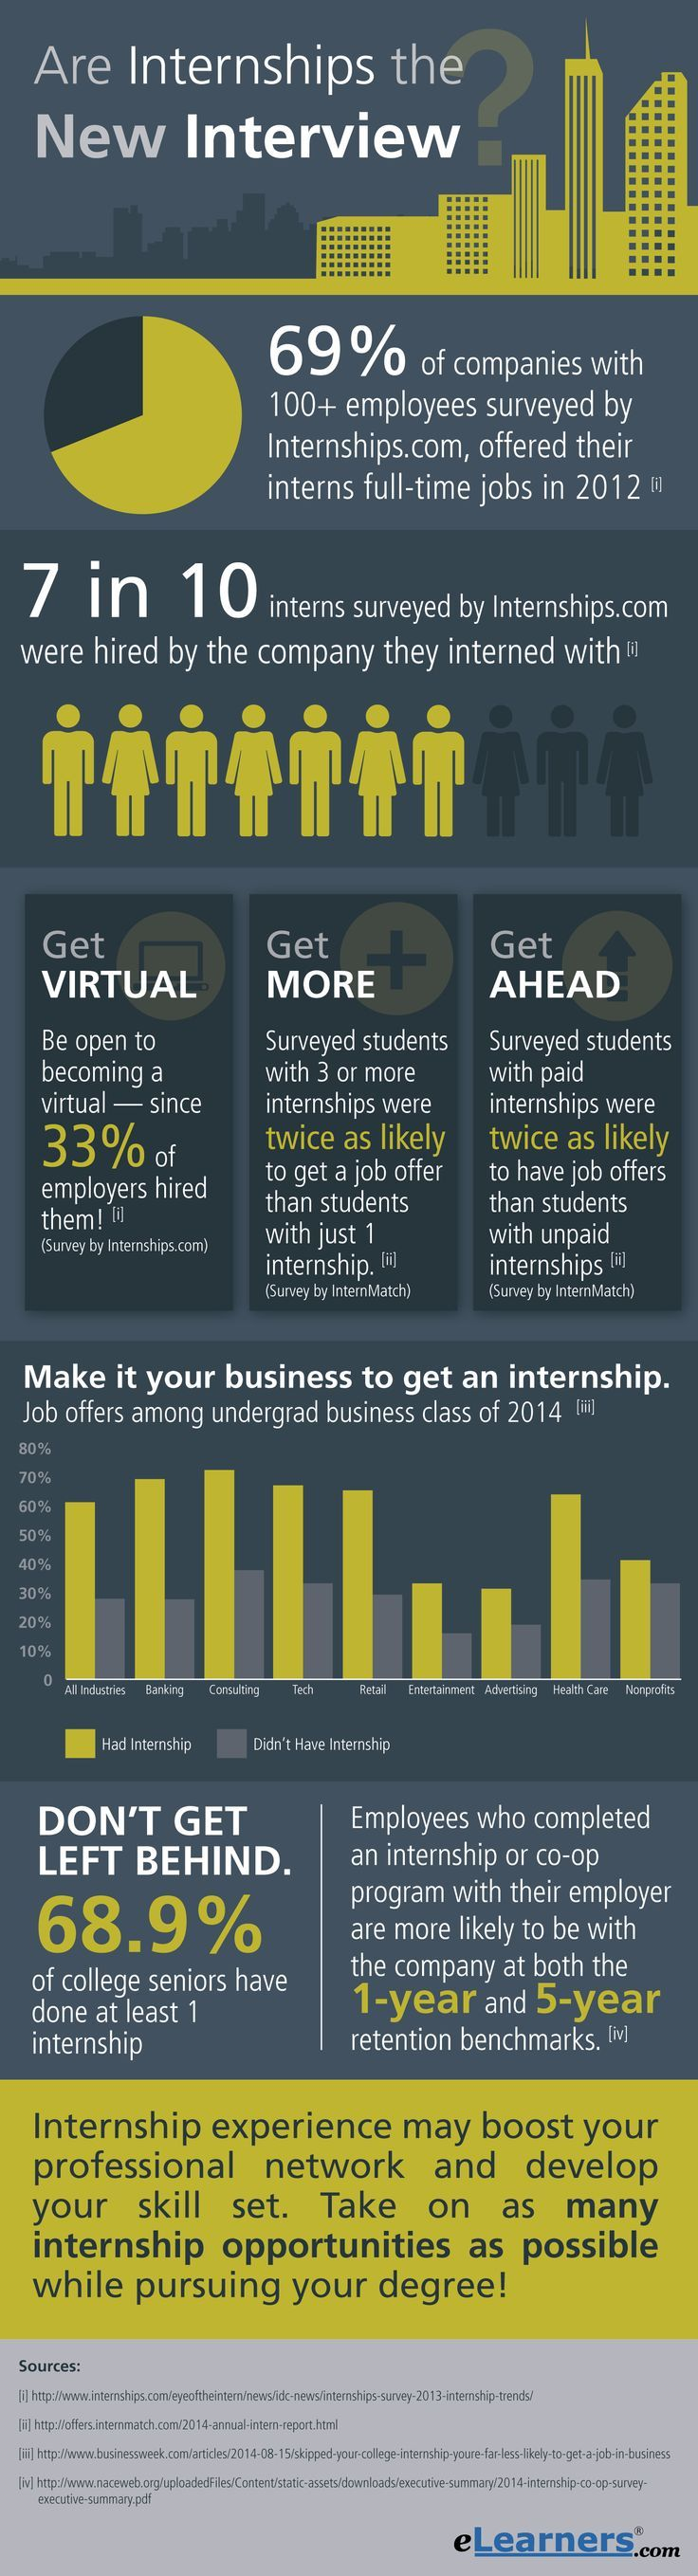 infographic infographic infographic are internships the new job interview image description infographic infographic are internships the new jo - Job Hunting Tips For Job Hunting Strategies